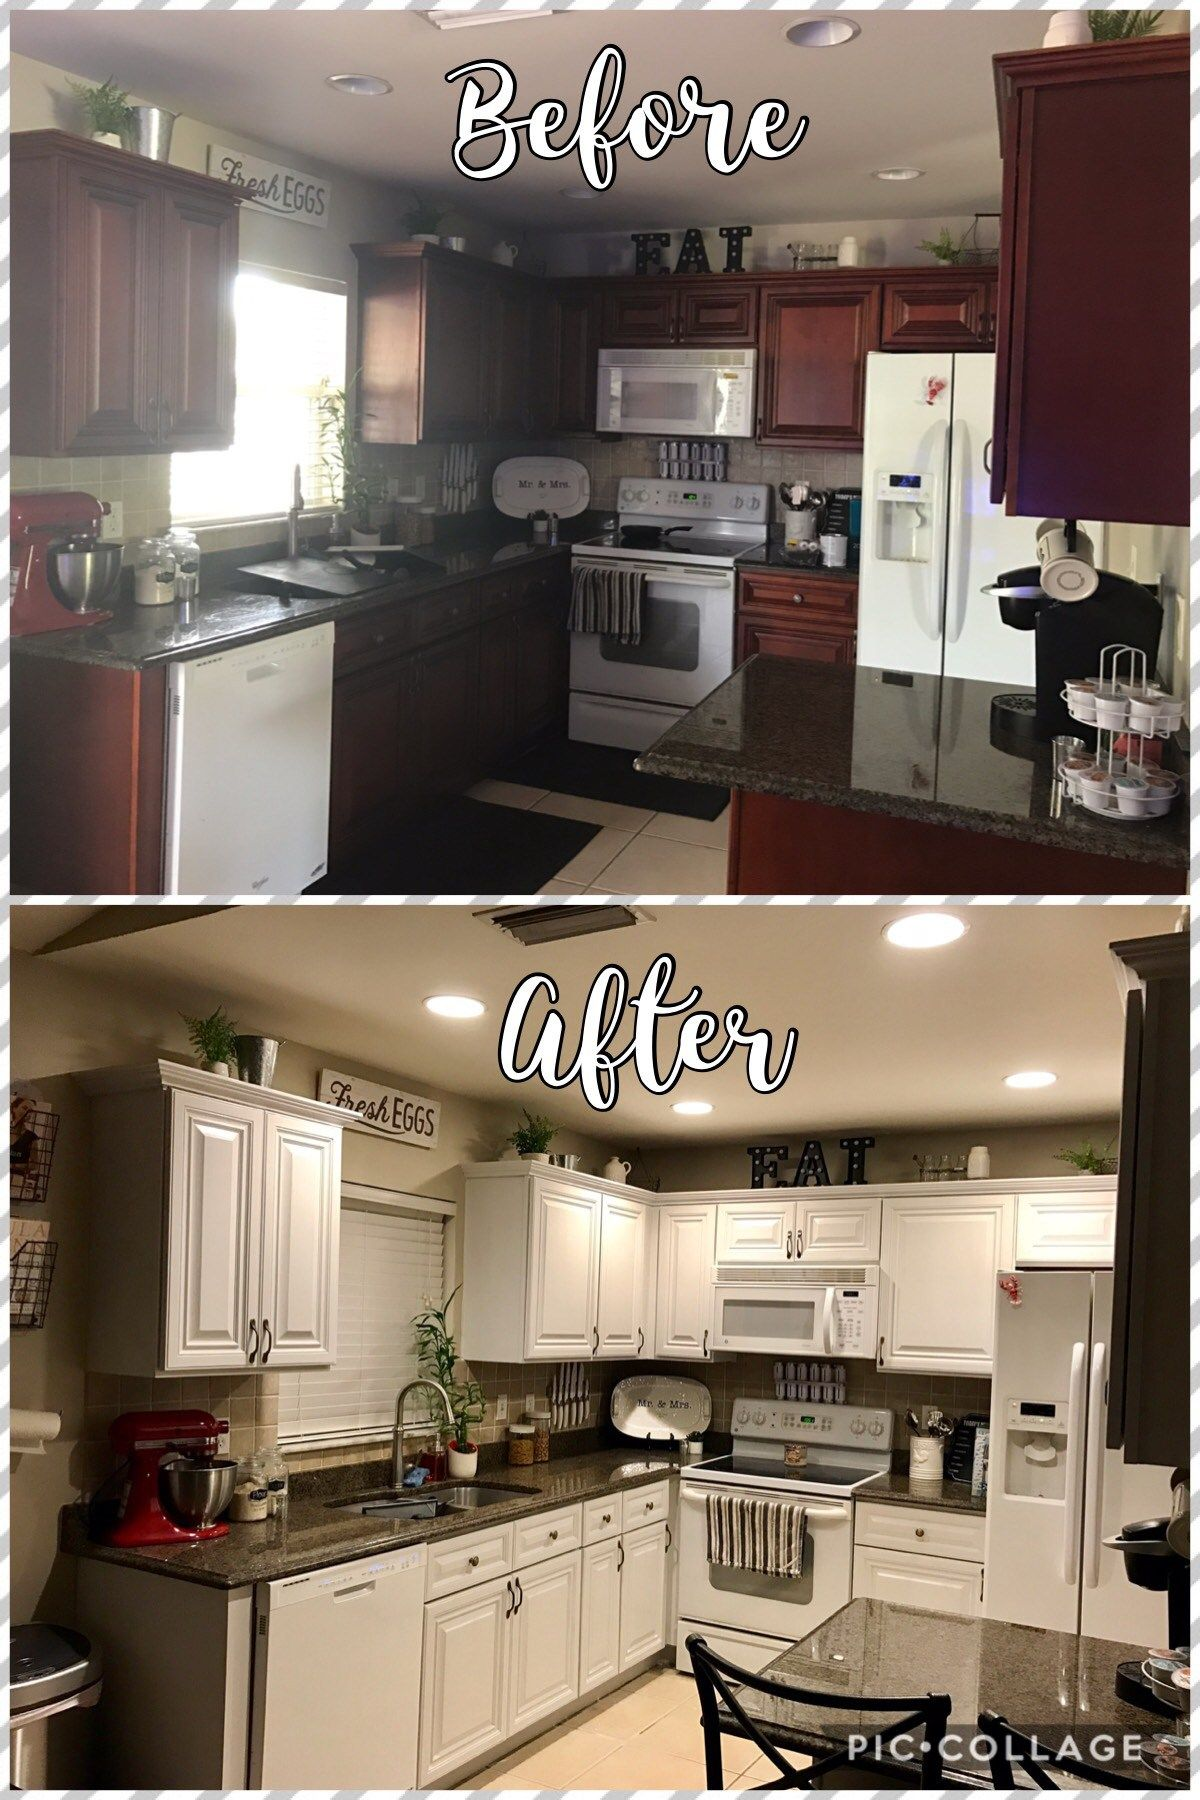 Paint Kitchen Cabinets With Chalk Paint Chalk Paint Kitchen Cabinets Diy Kitchen Cabinets Painting Kitchen Cabinets Before And After